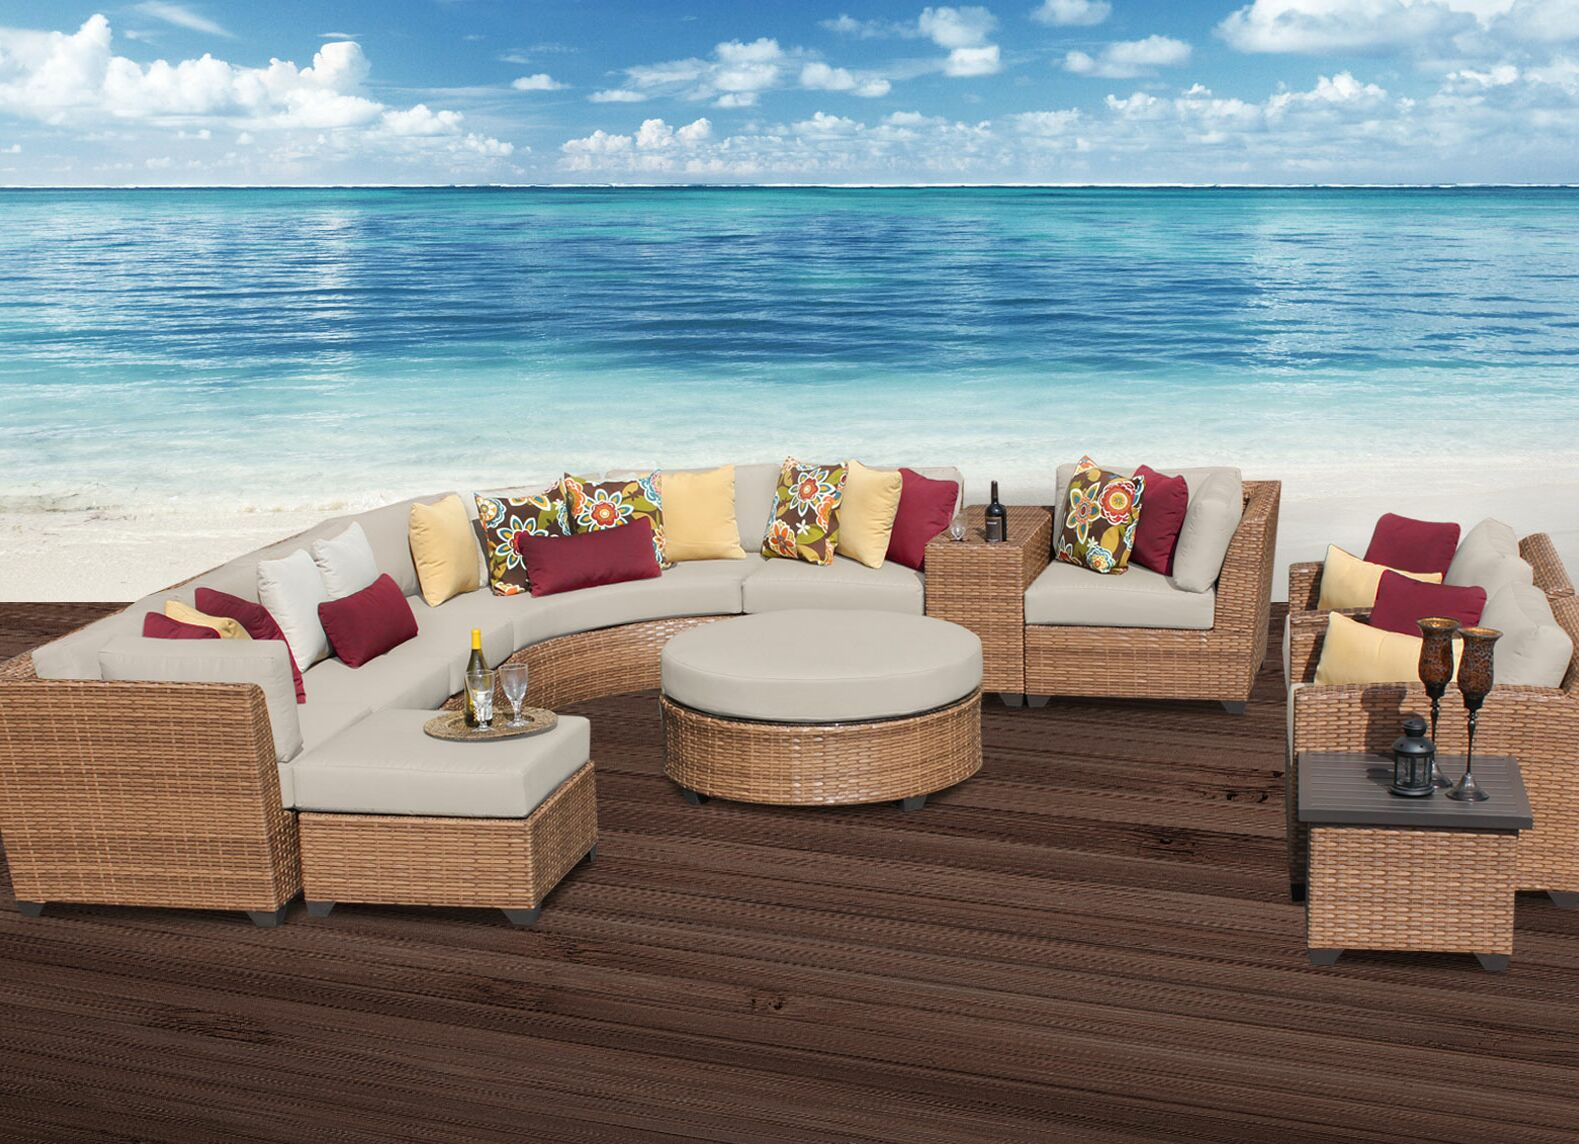 East Village 12 Piece Rattan Sectional Set with Cushions Color: Beige